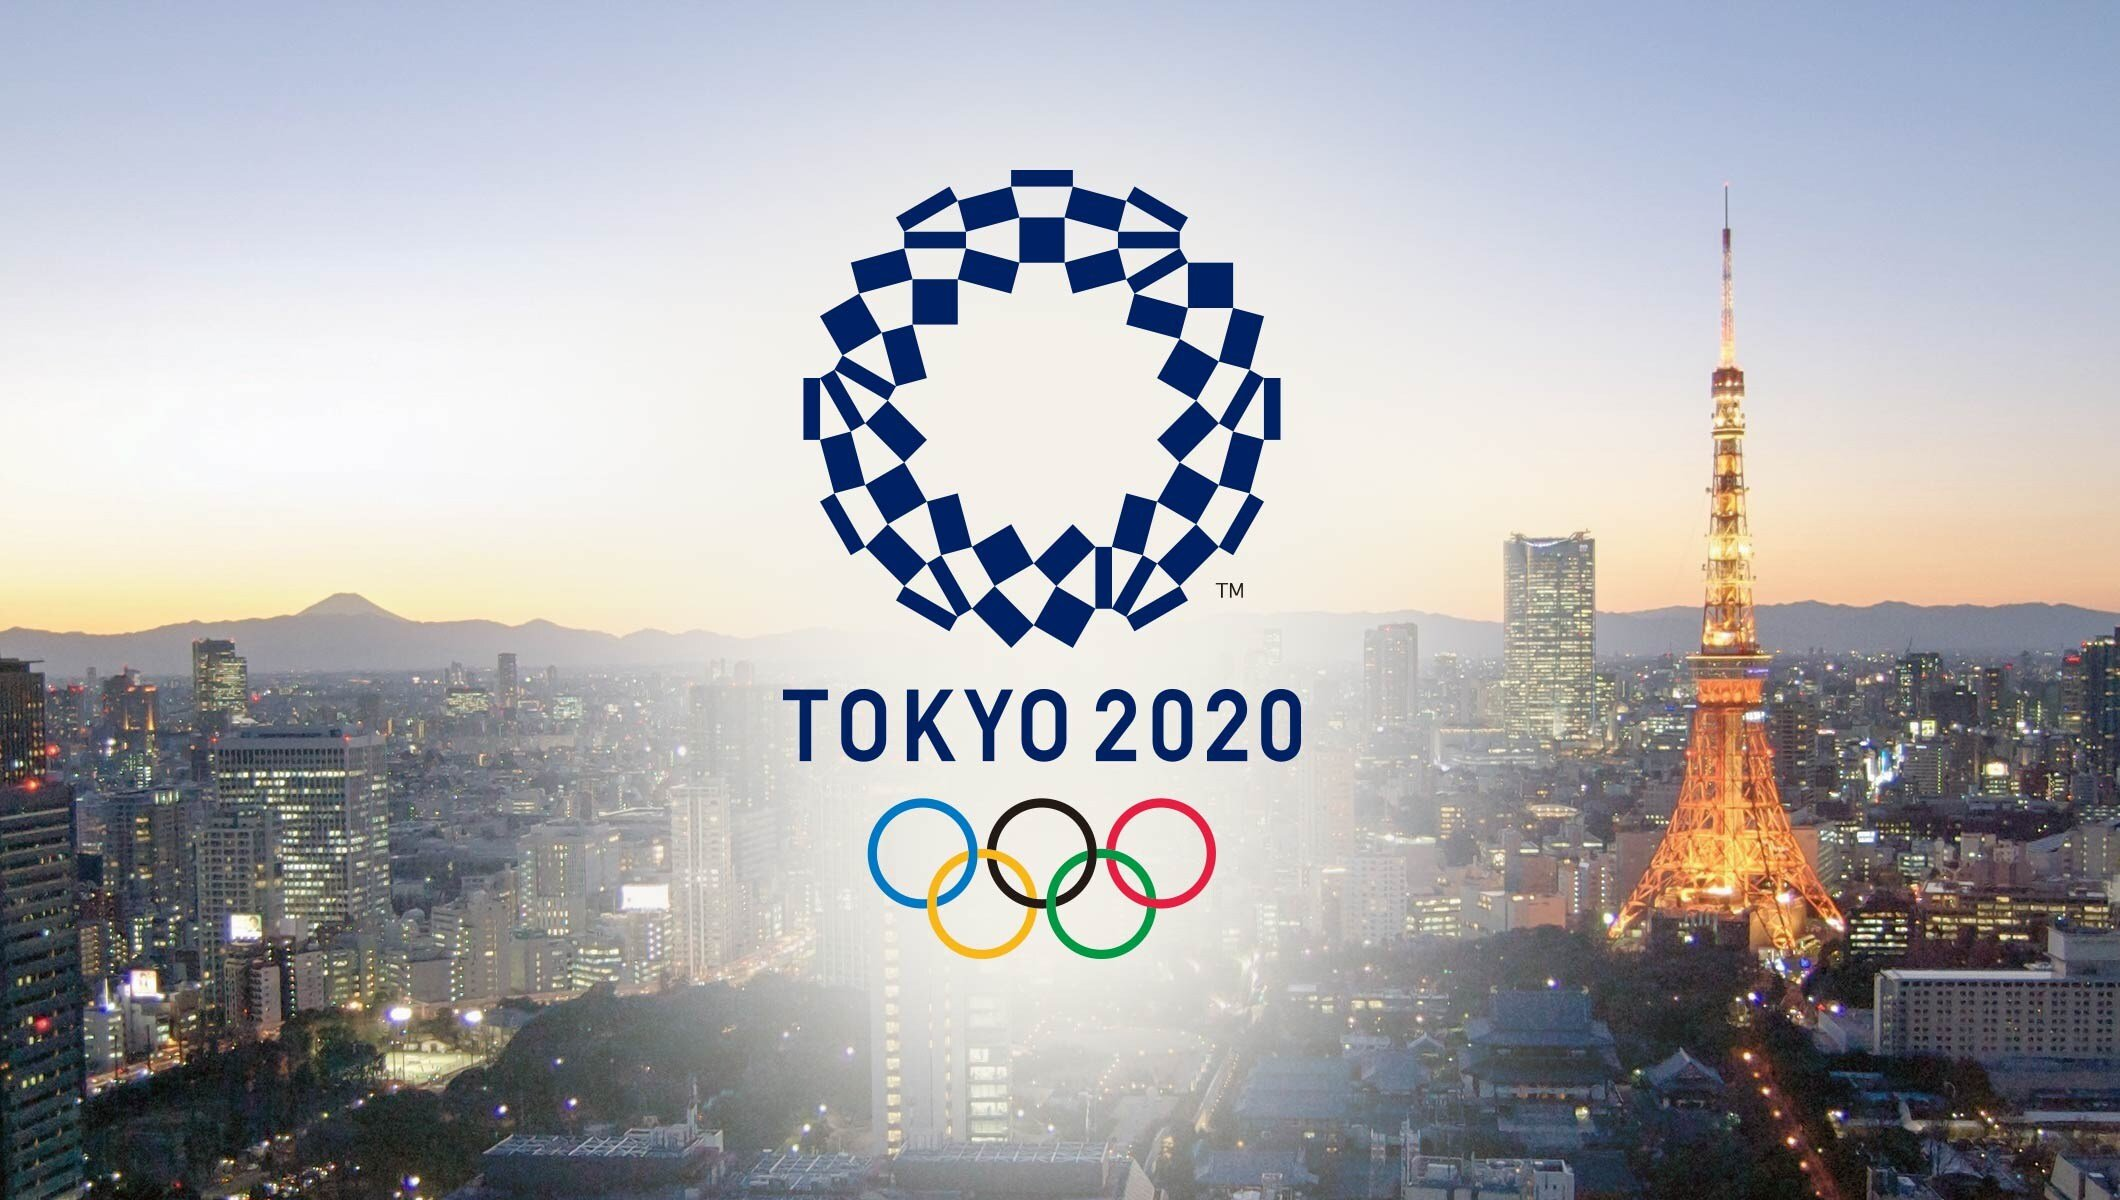 The Organising Committee of the Tokyo Olympic Games 2020 has recognised the MSC as one of their preferred certification schemes for fishery products